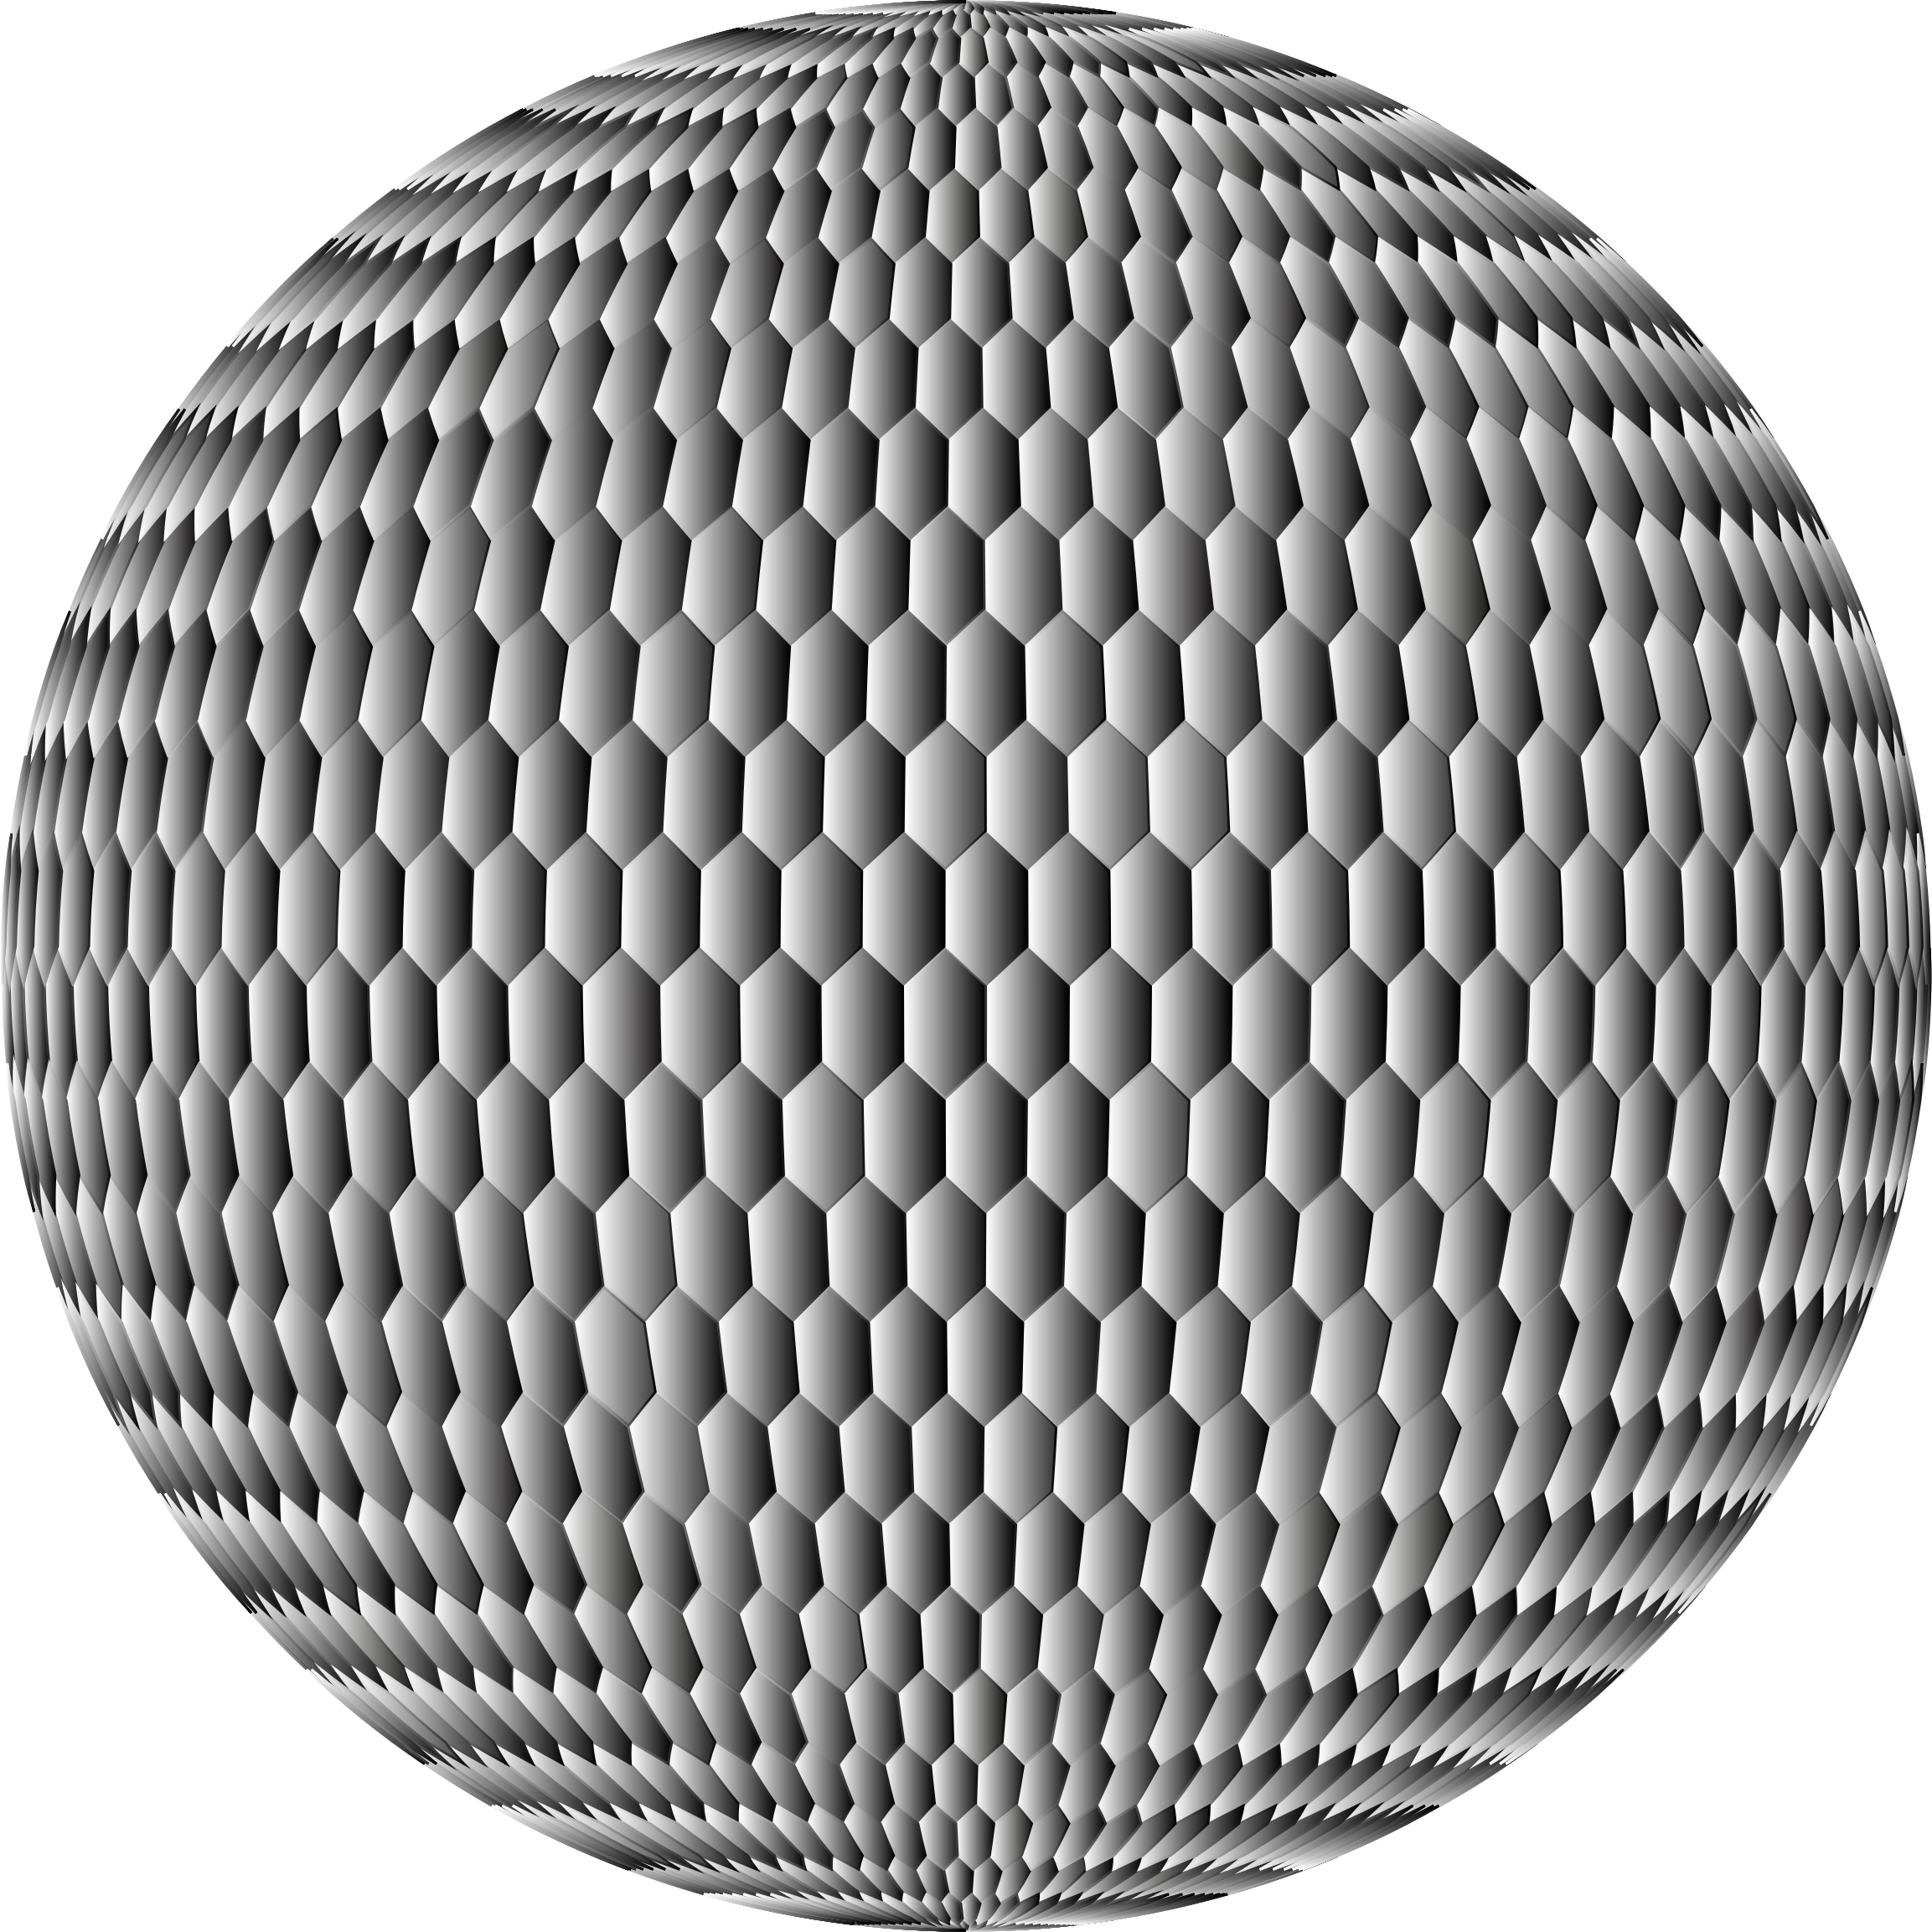 Prismatic Hexagonal Grid Sphere Variation 2 8 by GDJ